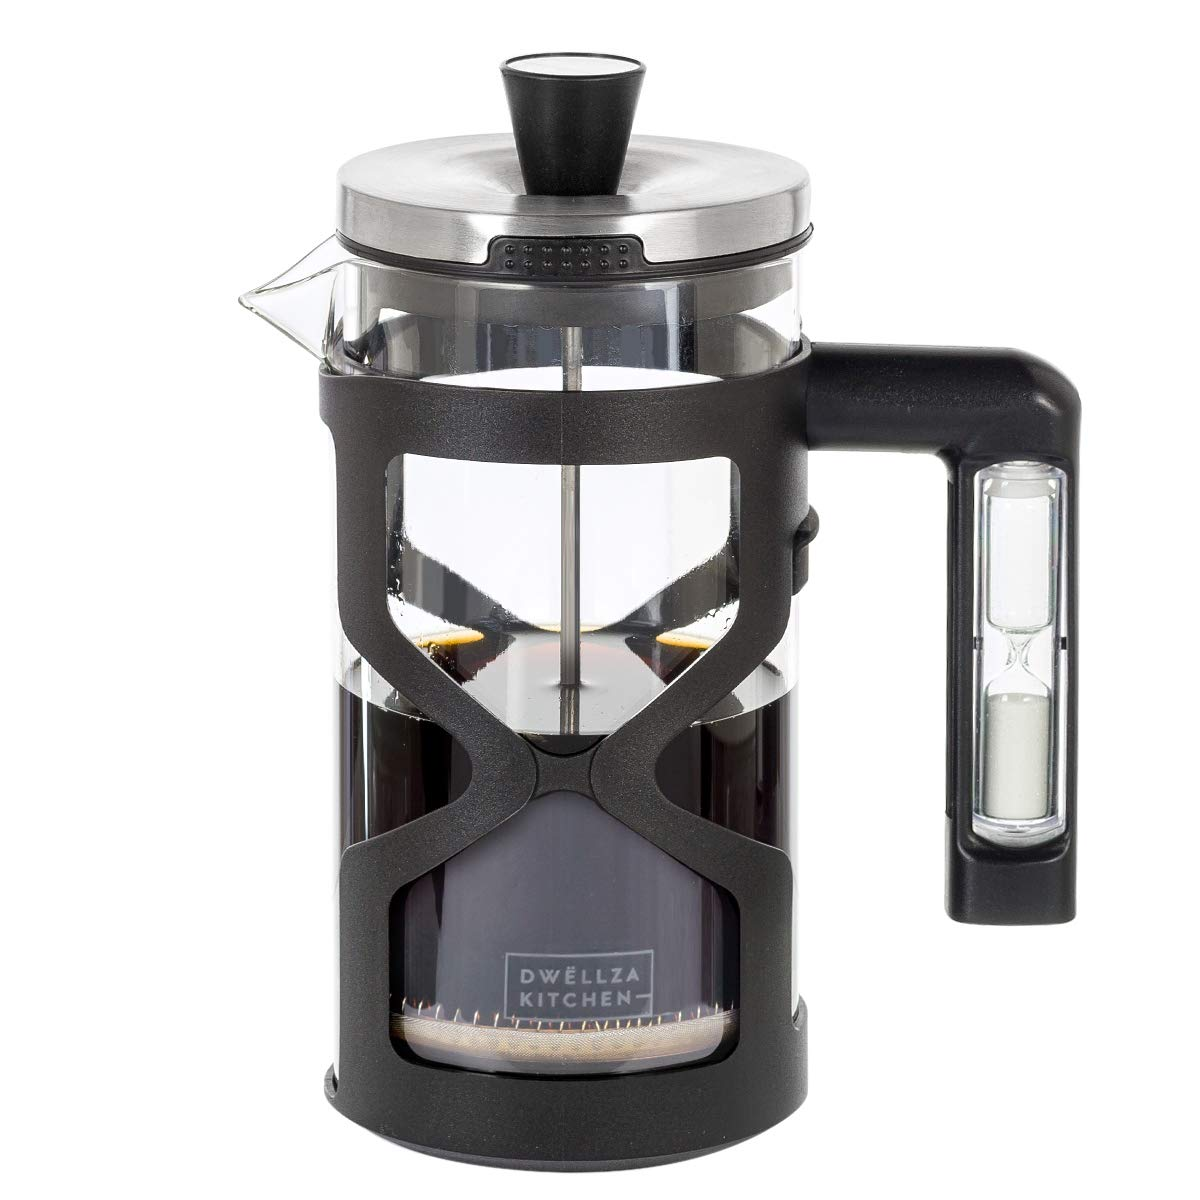 DWËLLZA KITCHEN French Press Coffee Maker - with Hourglass Handle Timer, 34 Ounce, Triple Stainless Steel Filtration System, Includes 2 Bonus Filters, Glass Heat Resistant Loose Leaf Tea Brewer.